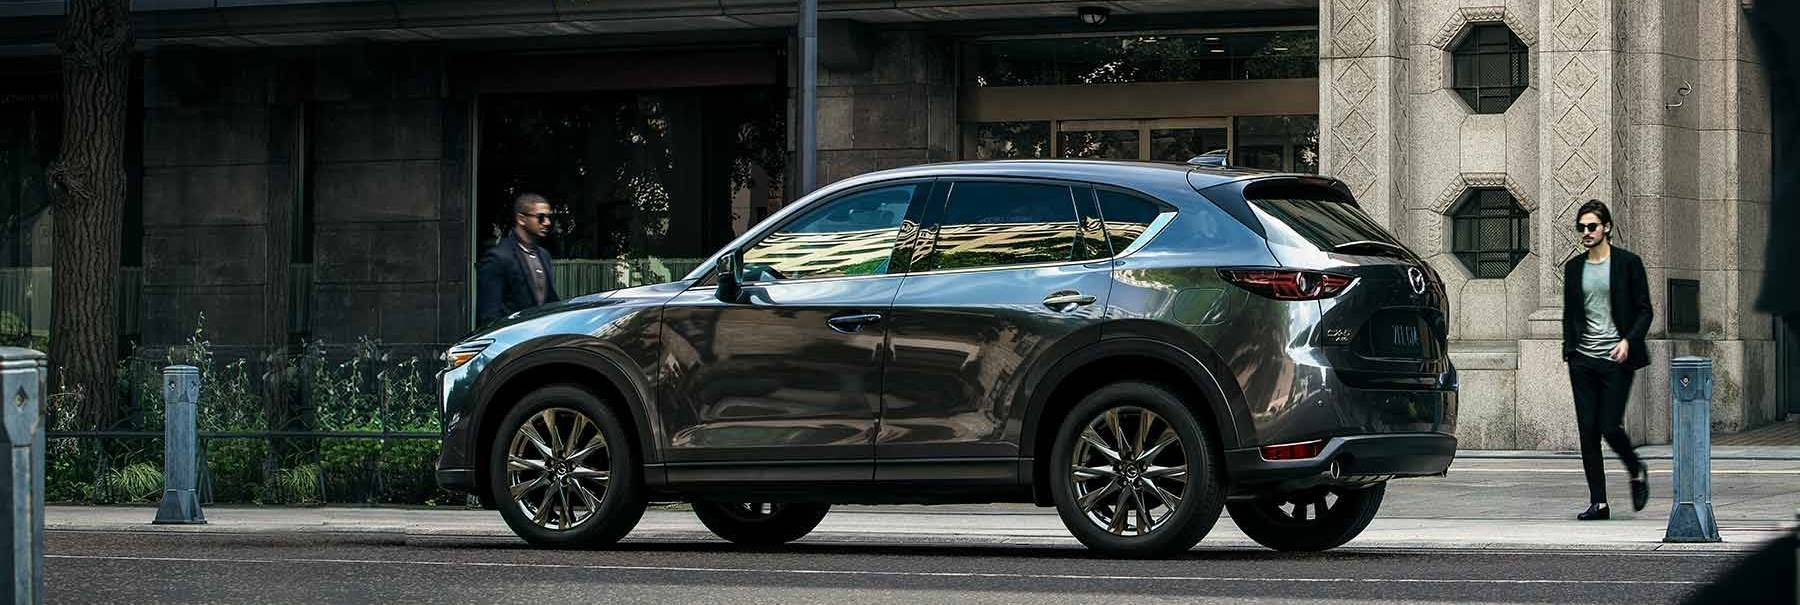 2019 Mazda CX-5 for Sale in Wantagh, NY